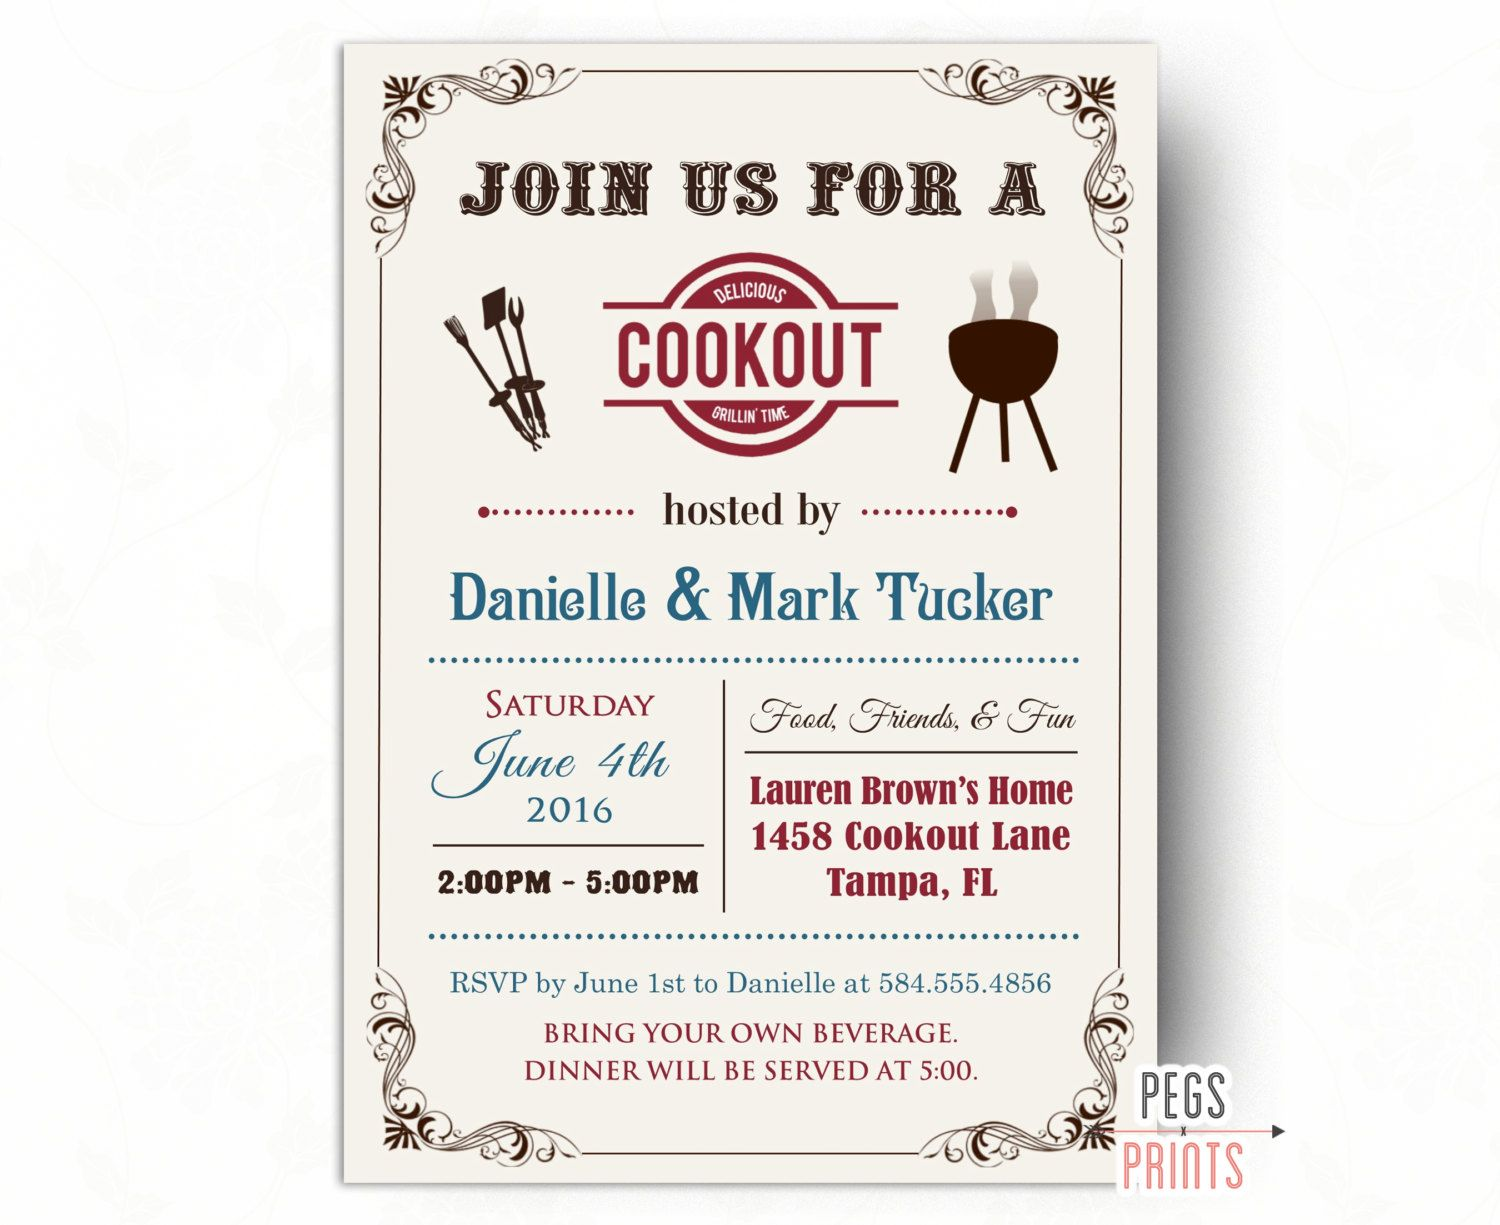 cookout invitation summer cookout invitation printable bbq invitation summer bbq invite summer party invitation family bbq 1500 usd by